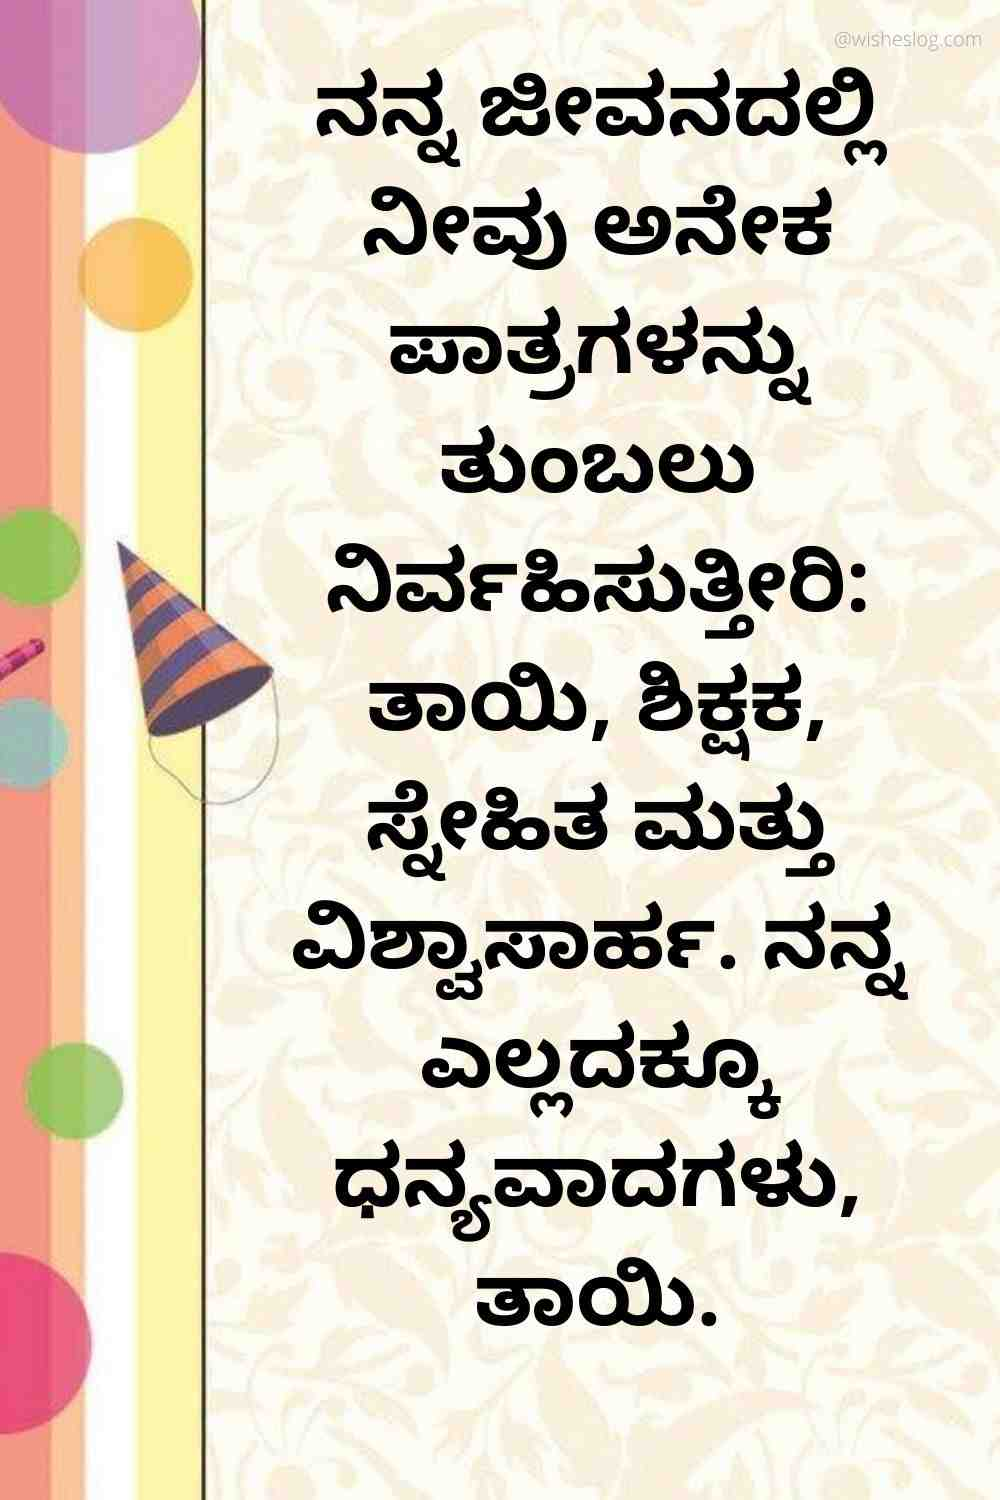 happy birthday wishes in kannada for mother